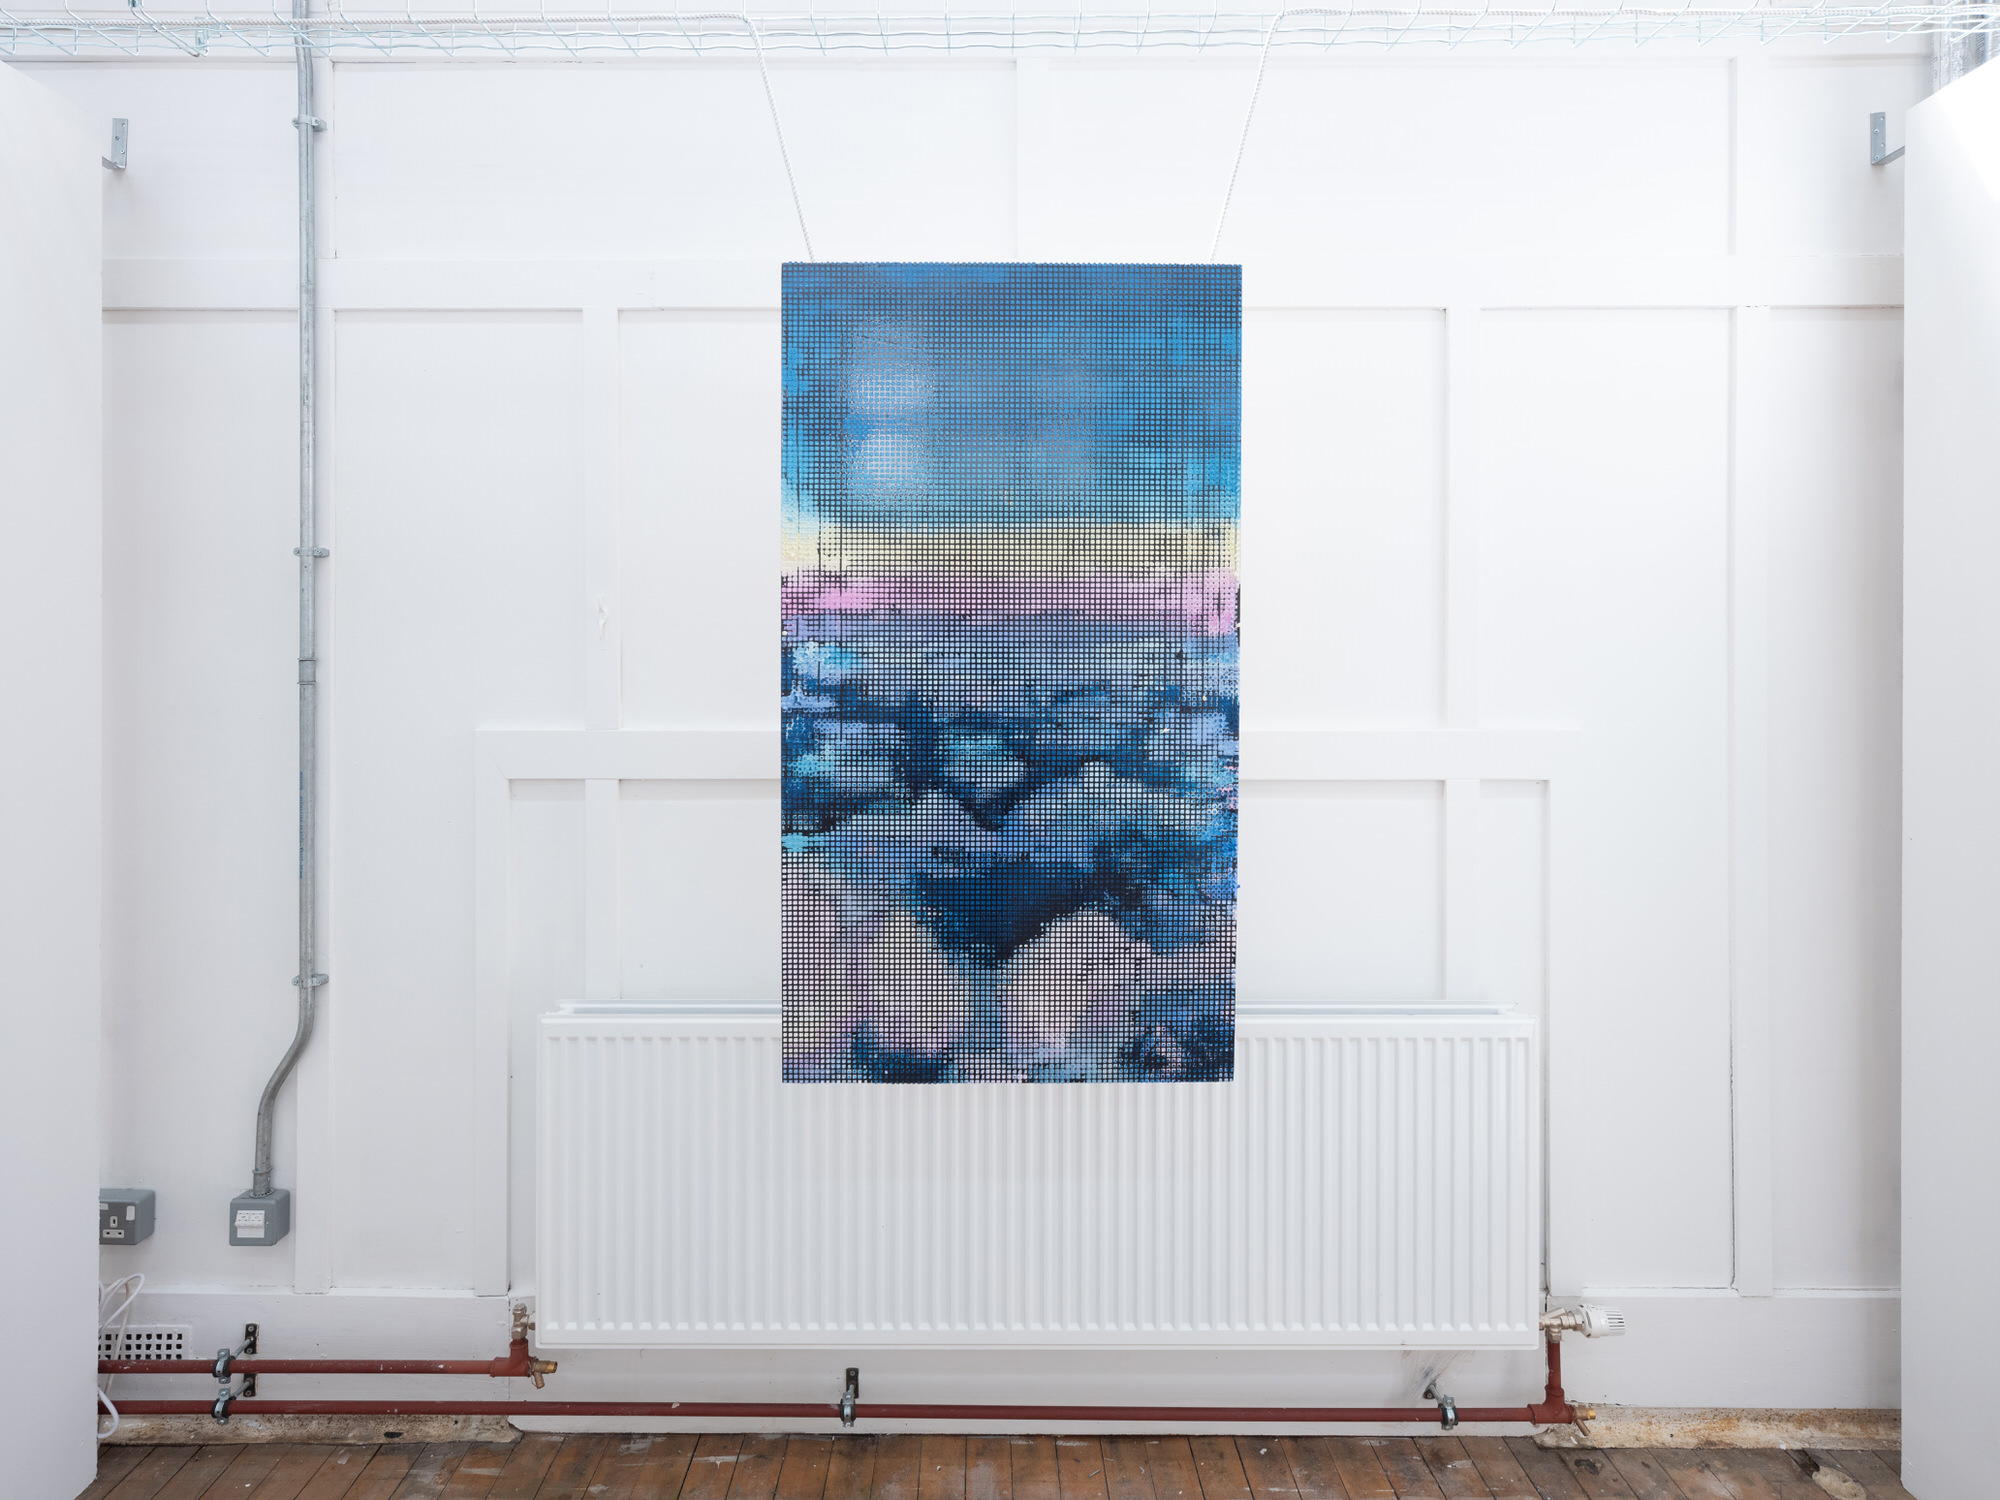 Alexander Hoffman | Artwork showing sky-like blue, yellow and pink tapestry | Image by McAteer Photo